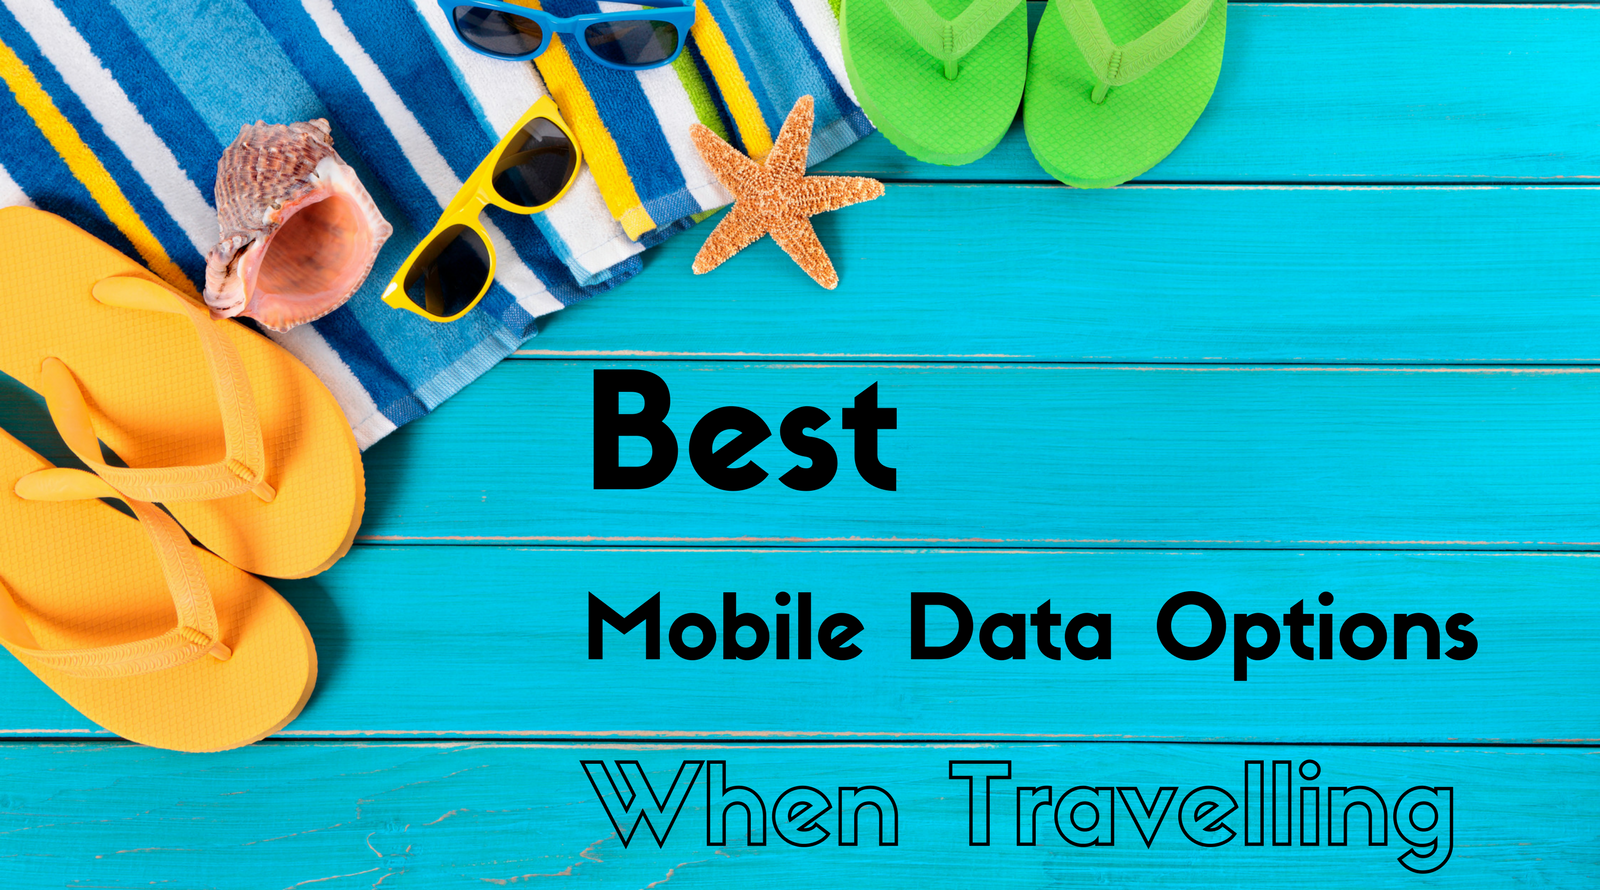 Travel Hacks: Should I buy overseas SIM card or locally when travelling?